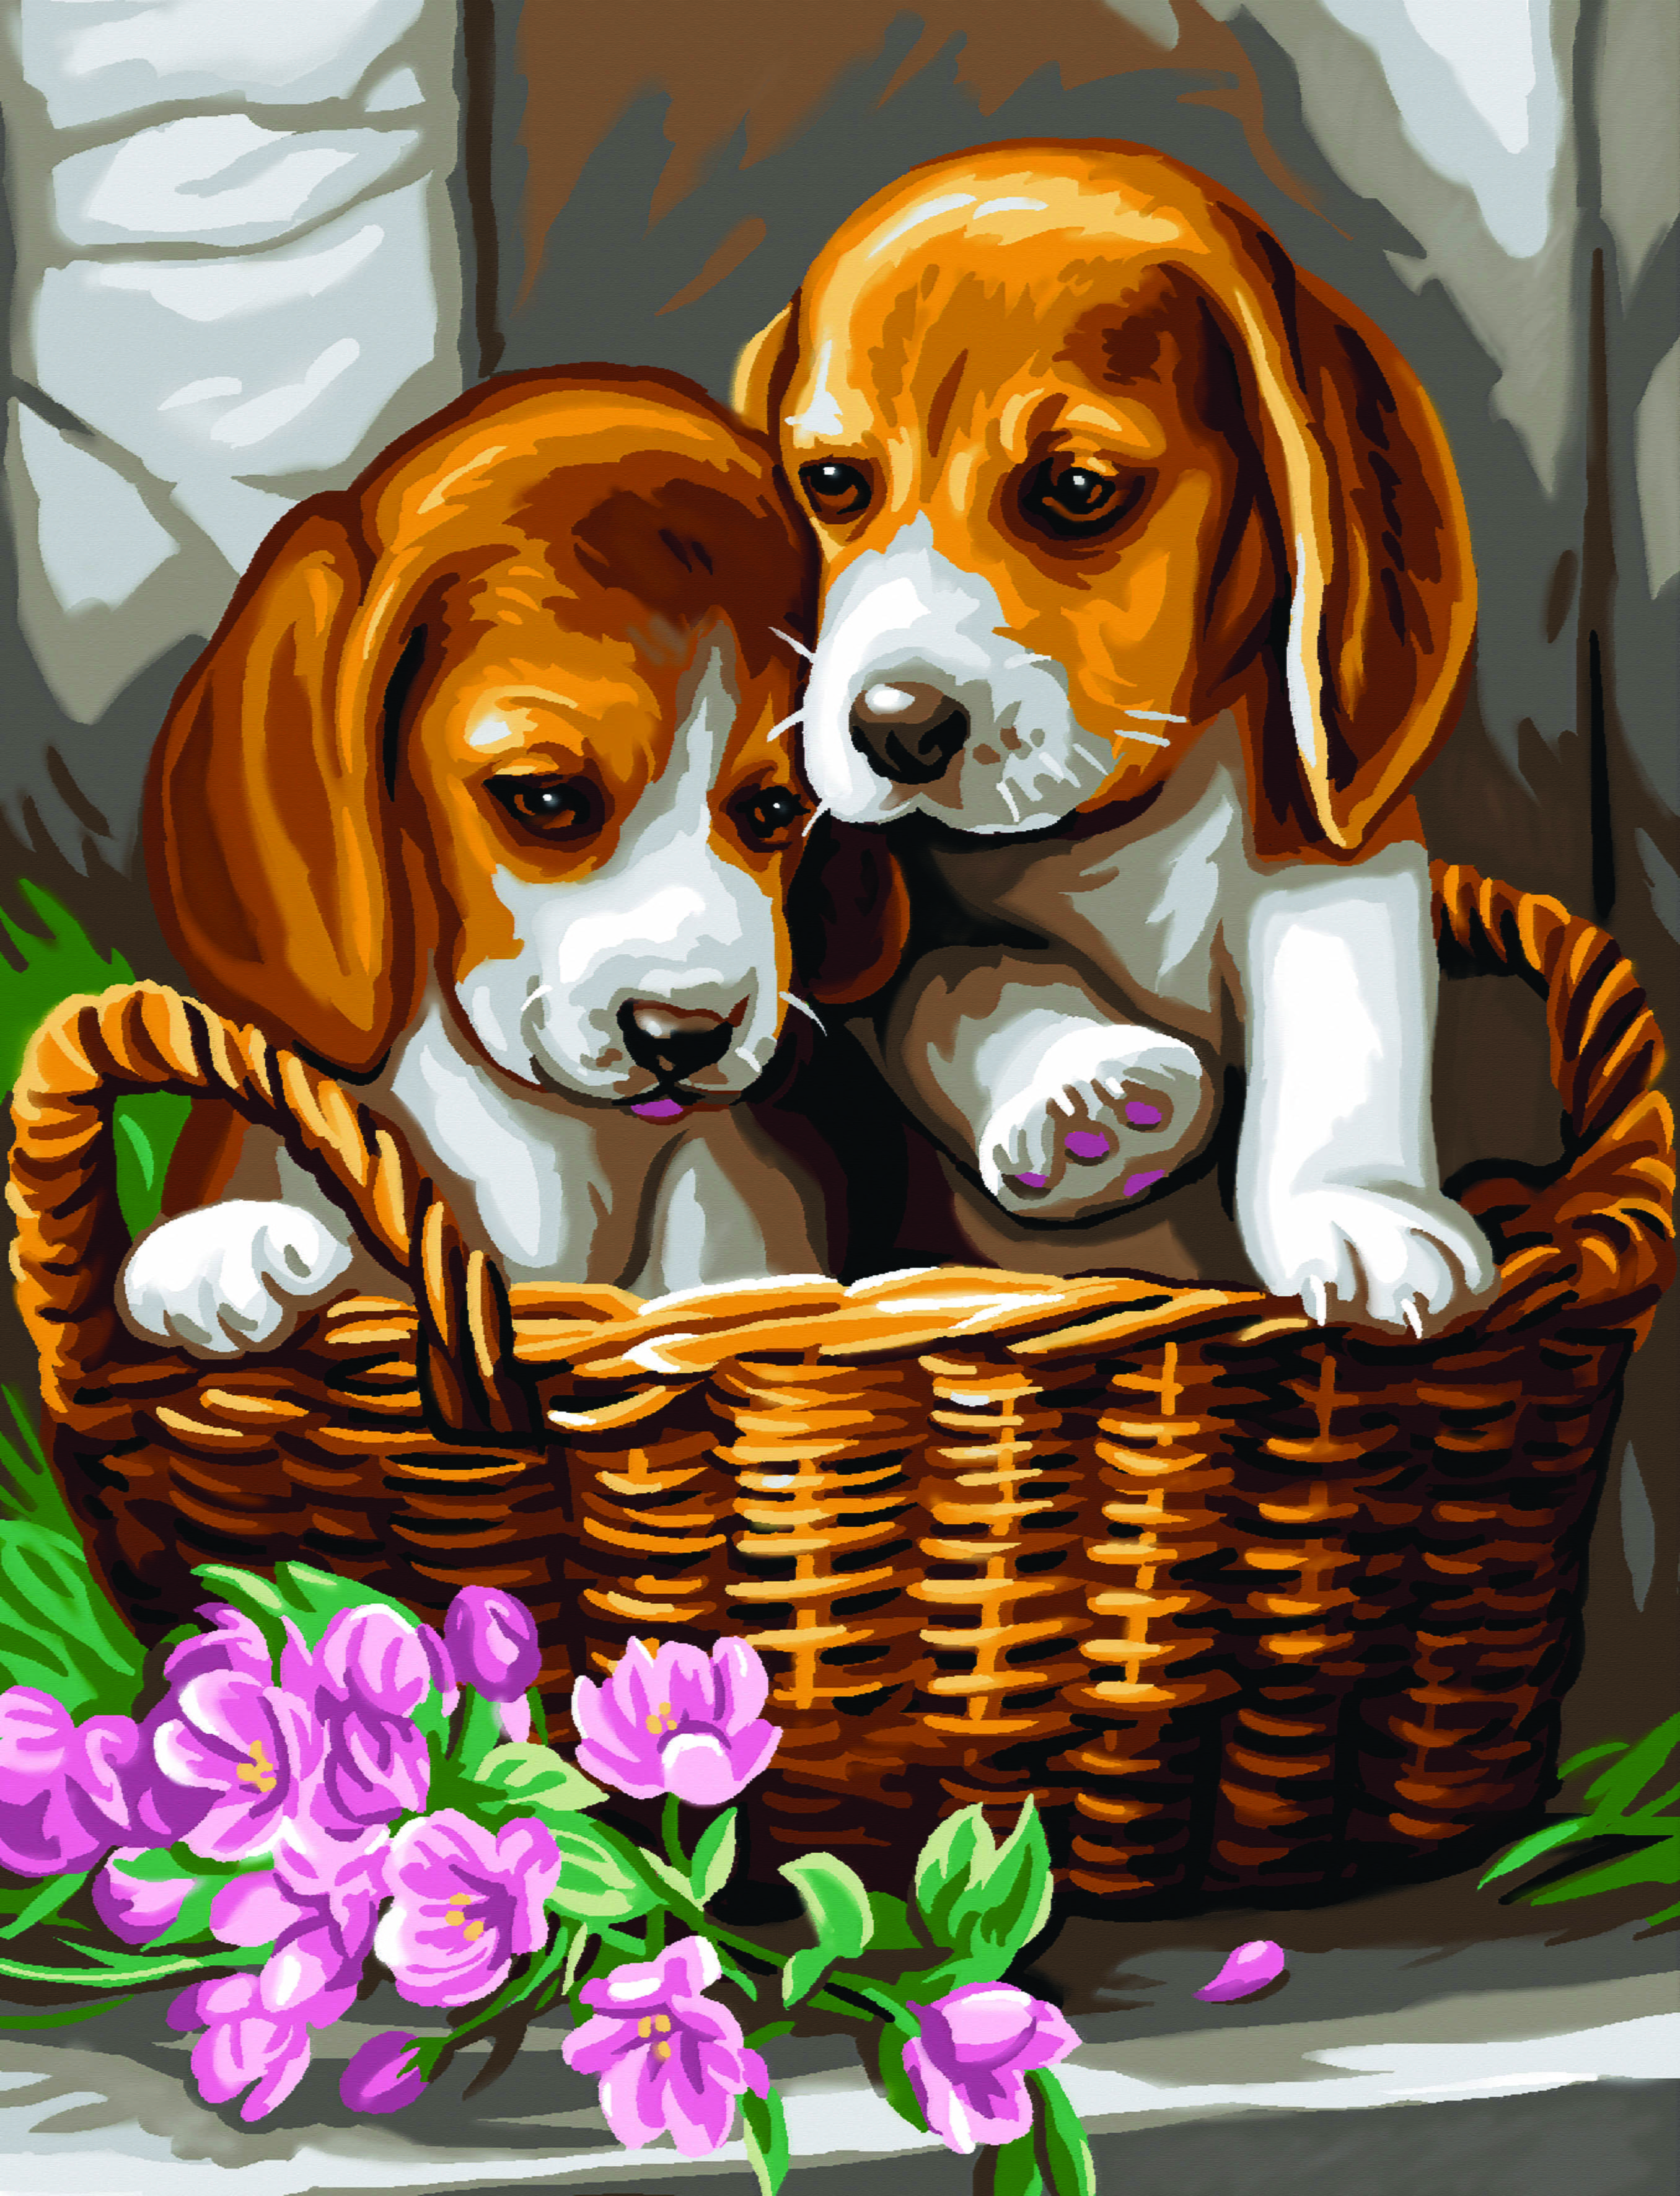 Junior Painting By Numbers Puppies In Basket Paint Set From Hobbies